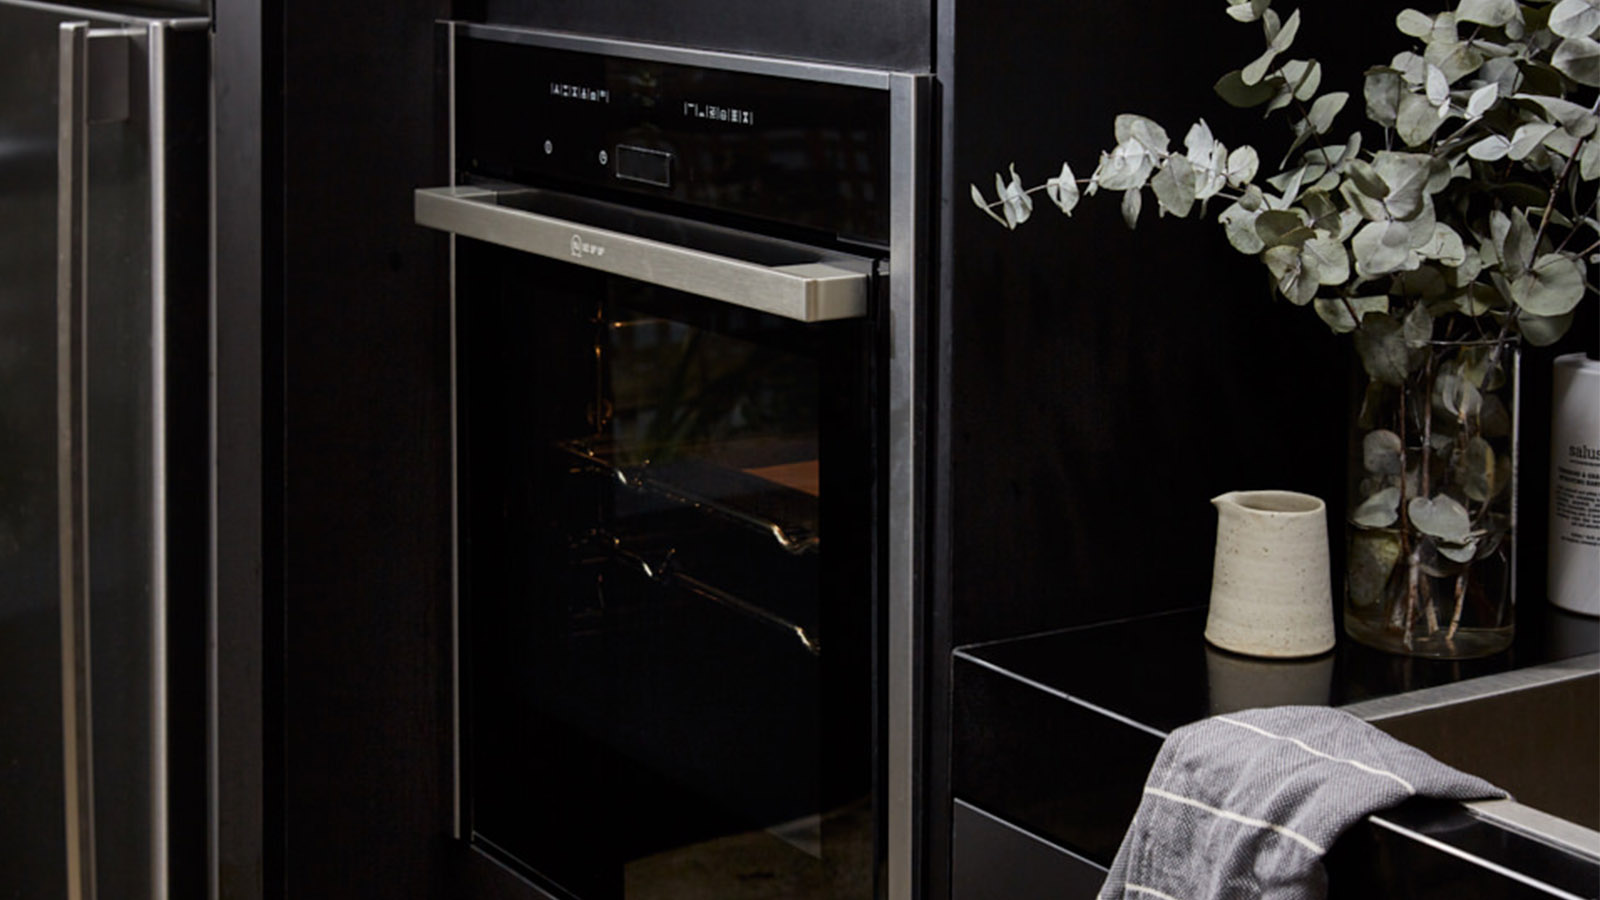 Top 12 Oven Functions And How To Use Them